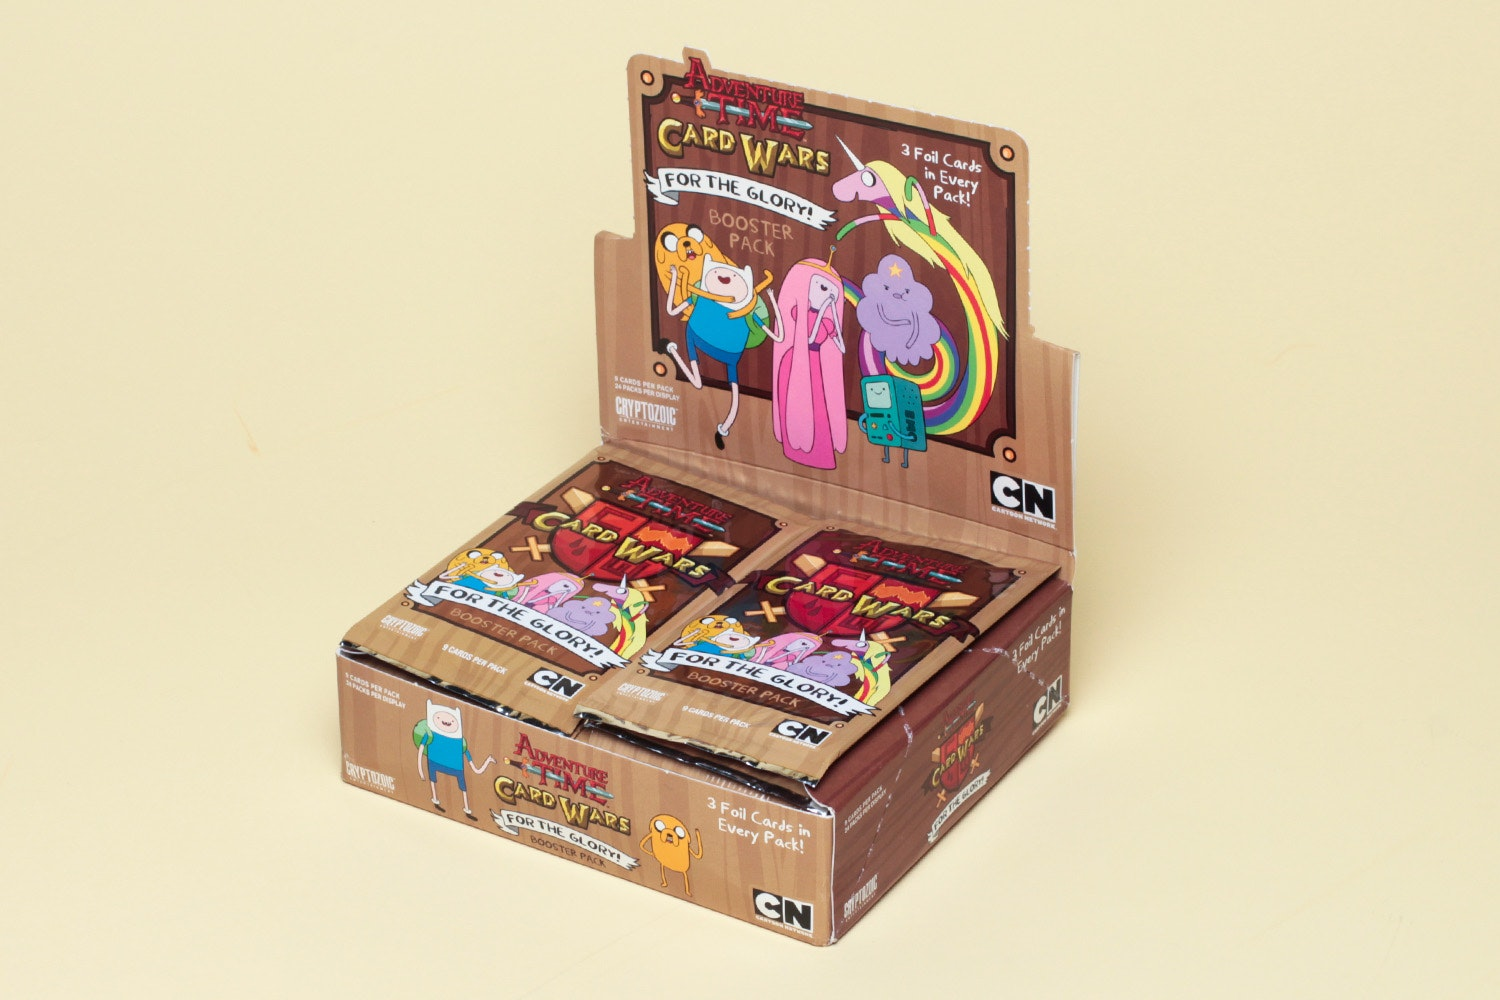 Adventure Time Card Wars: For the Glory Booster Box